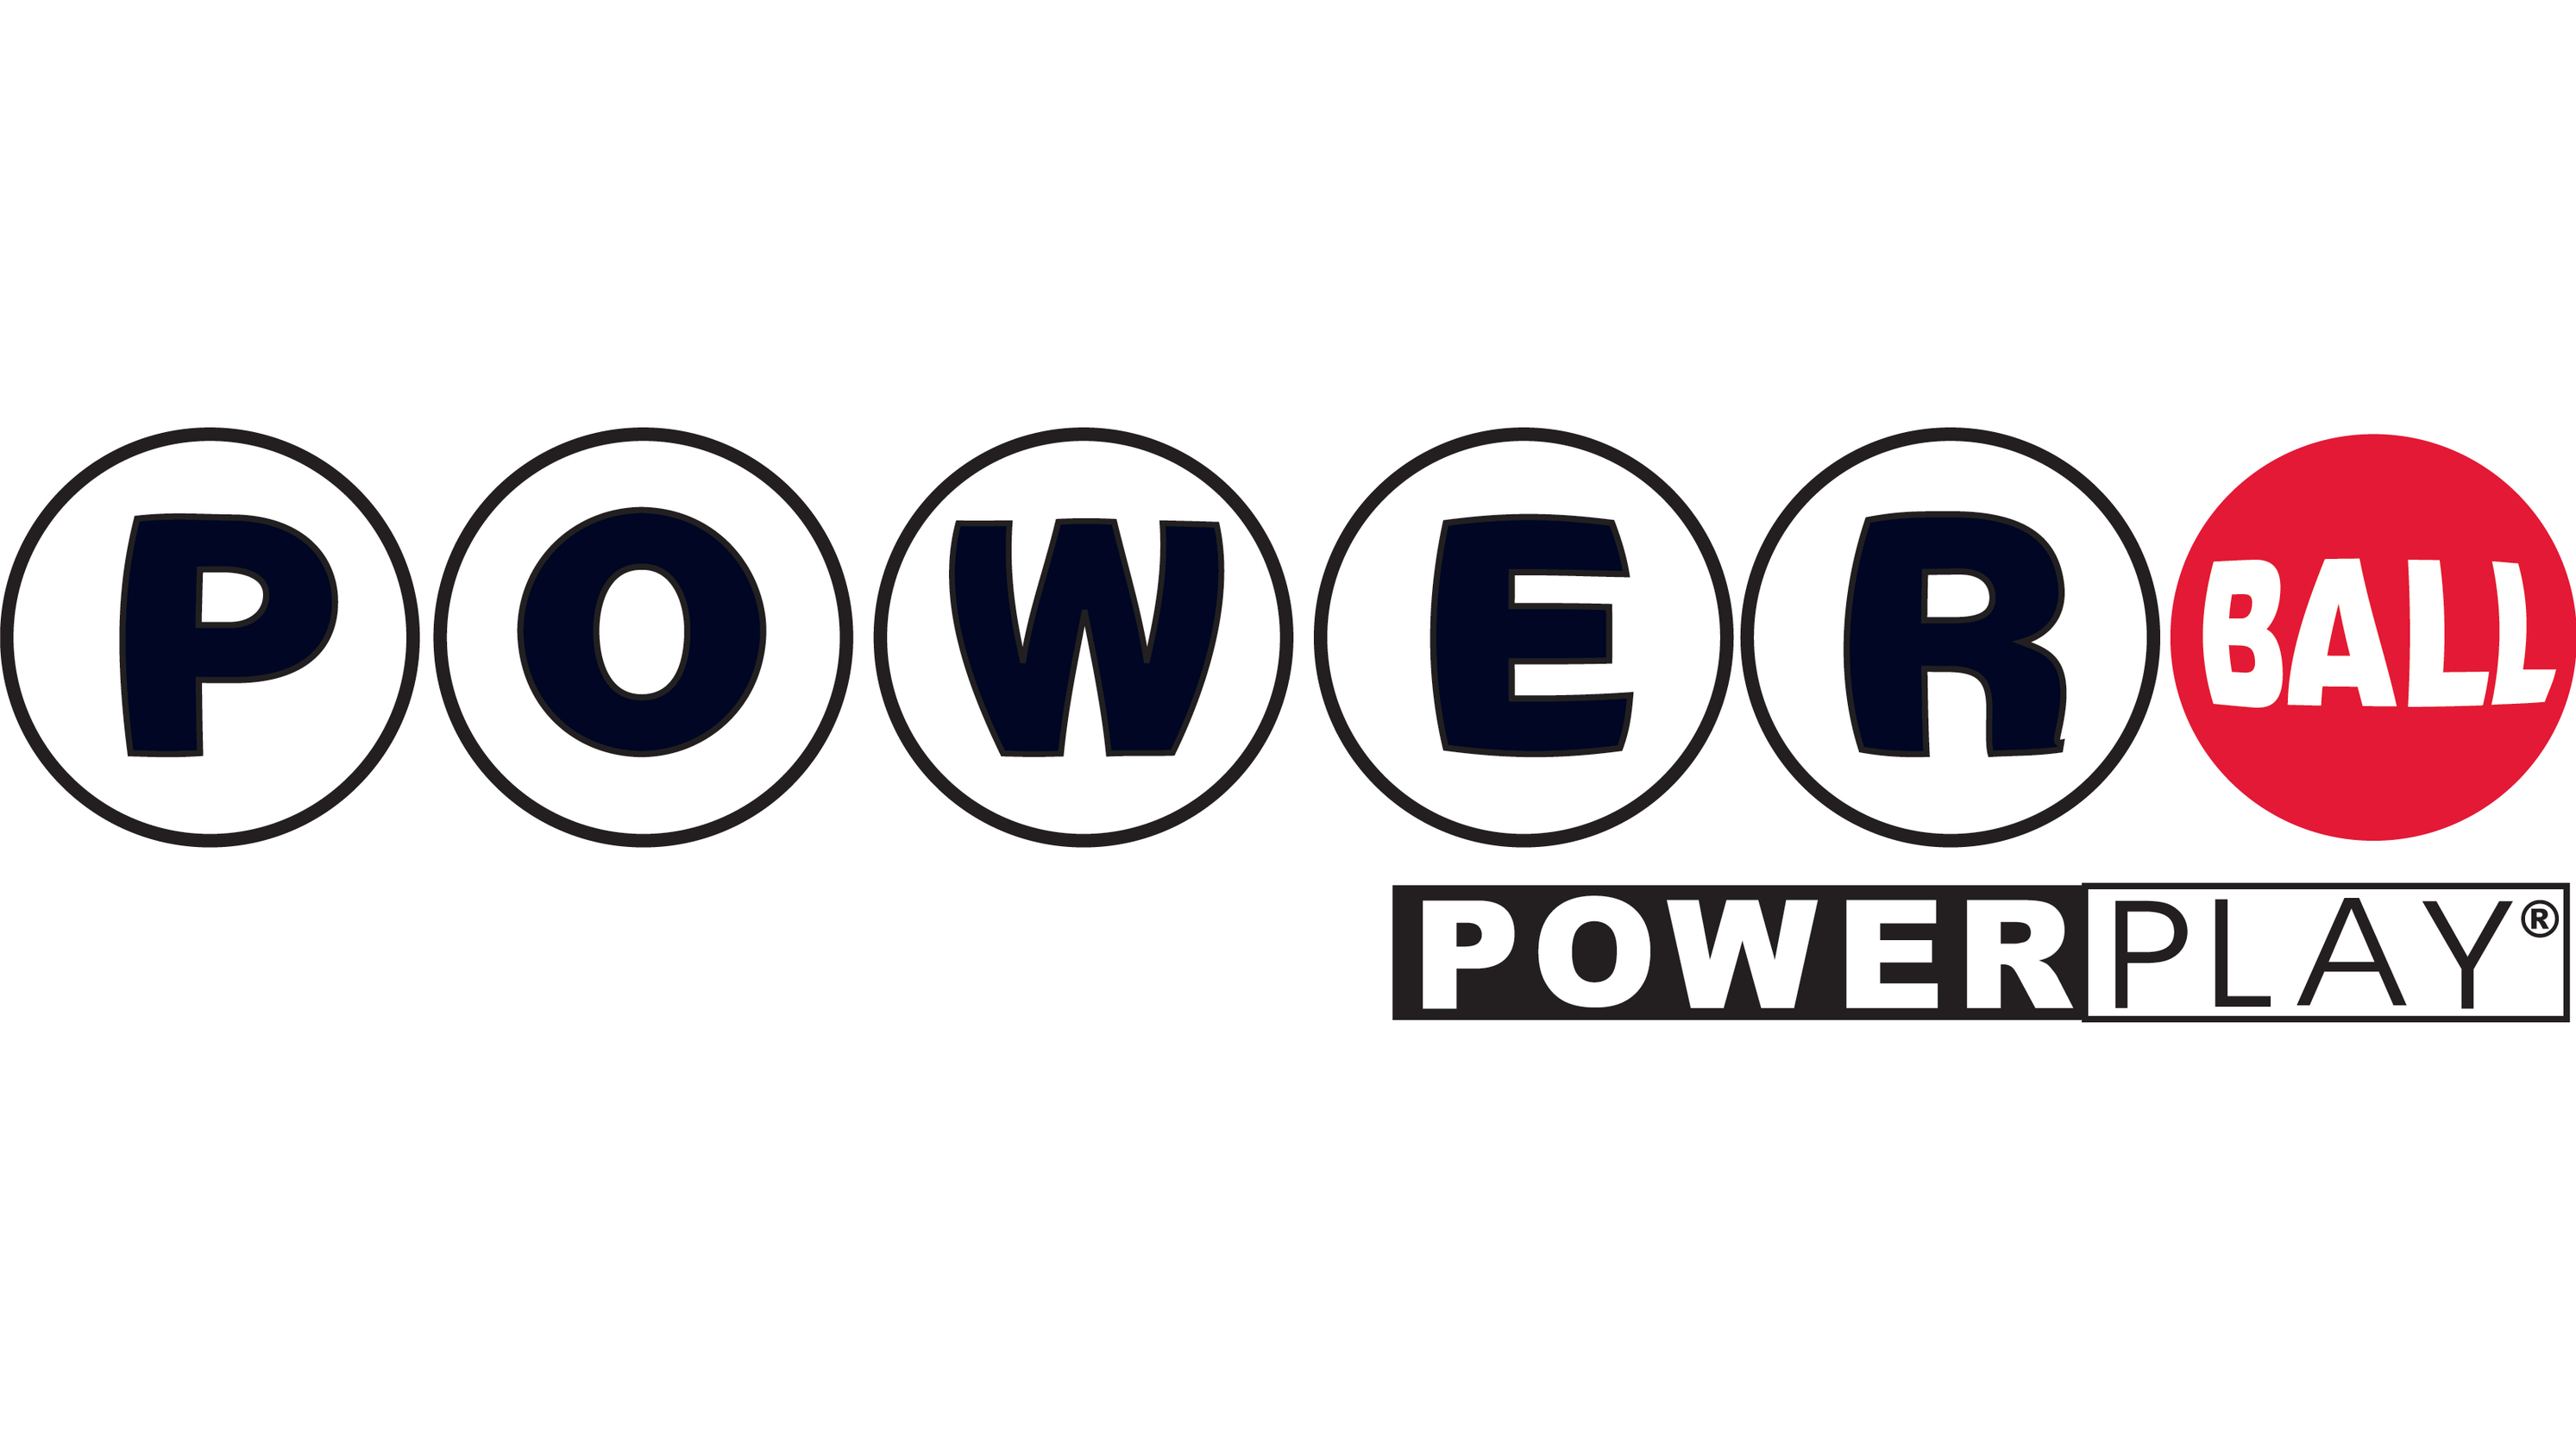 Powerball 2m Winning Ticket In Knoxville Sold At Campbell Station